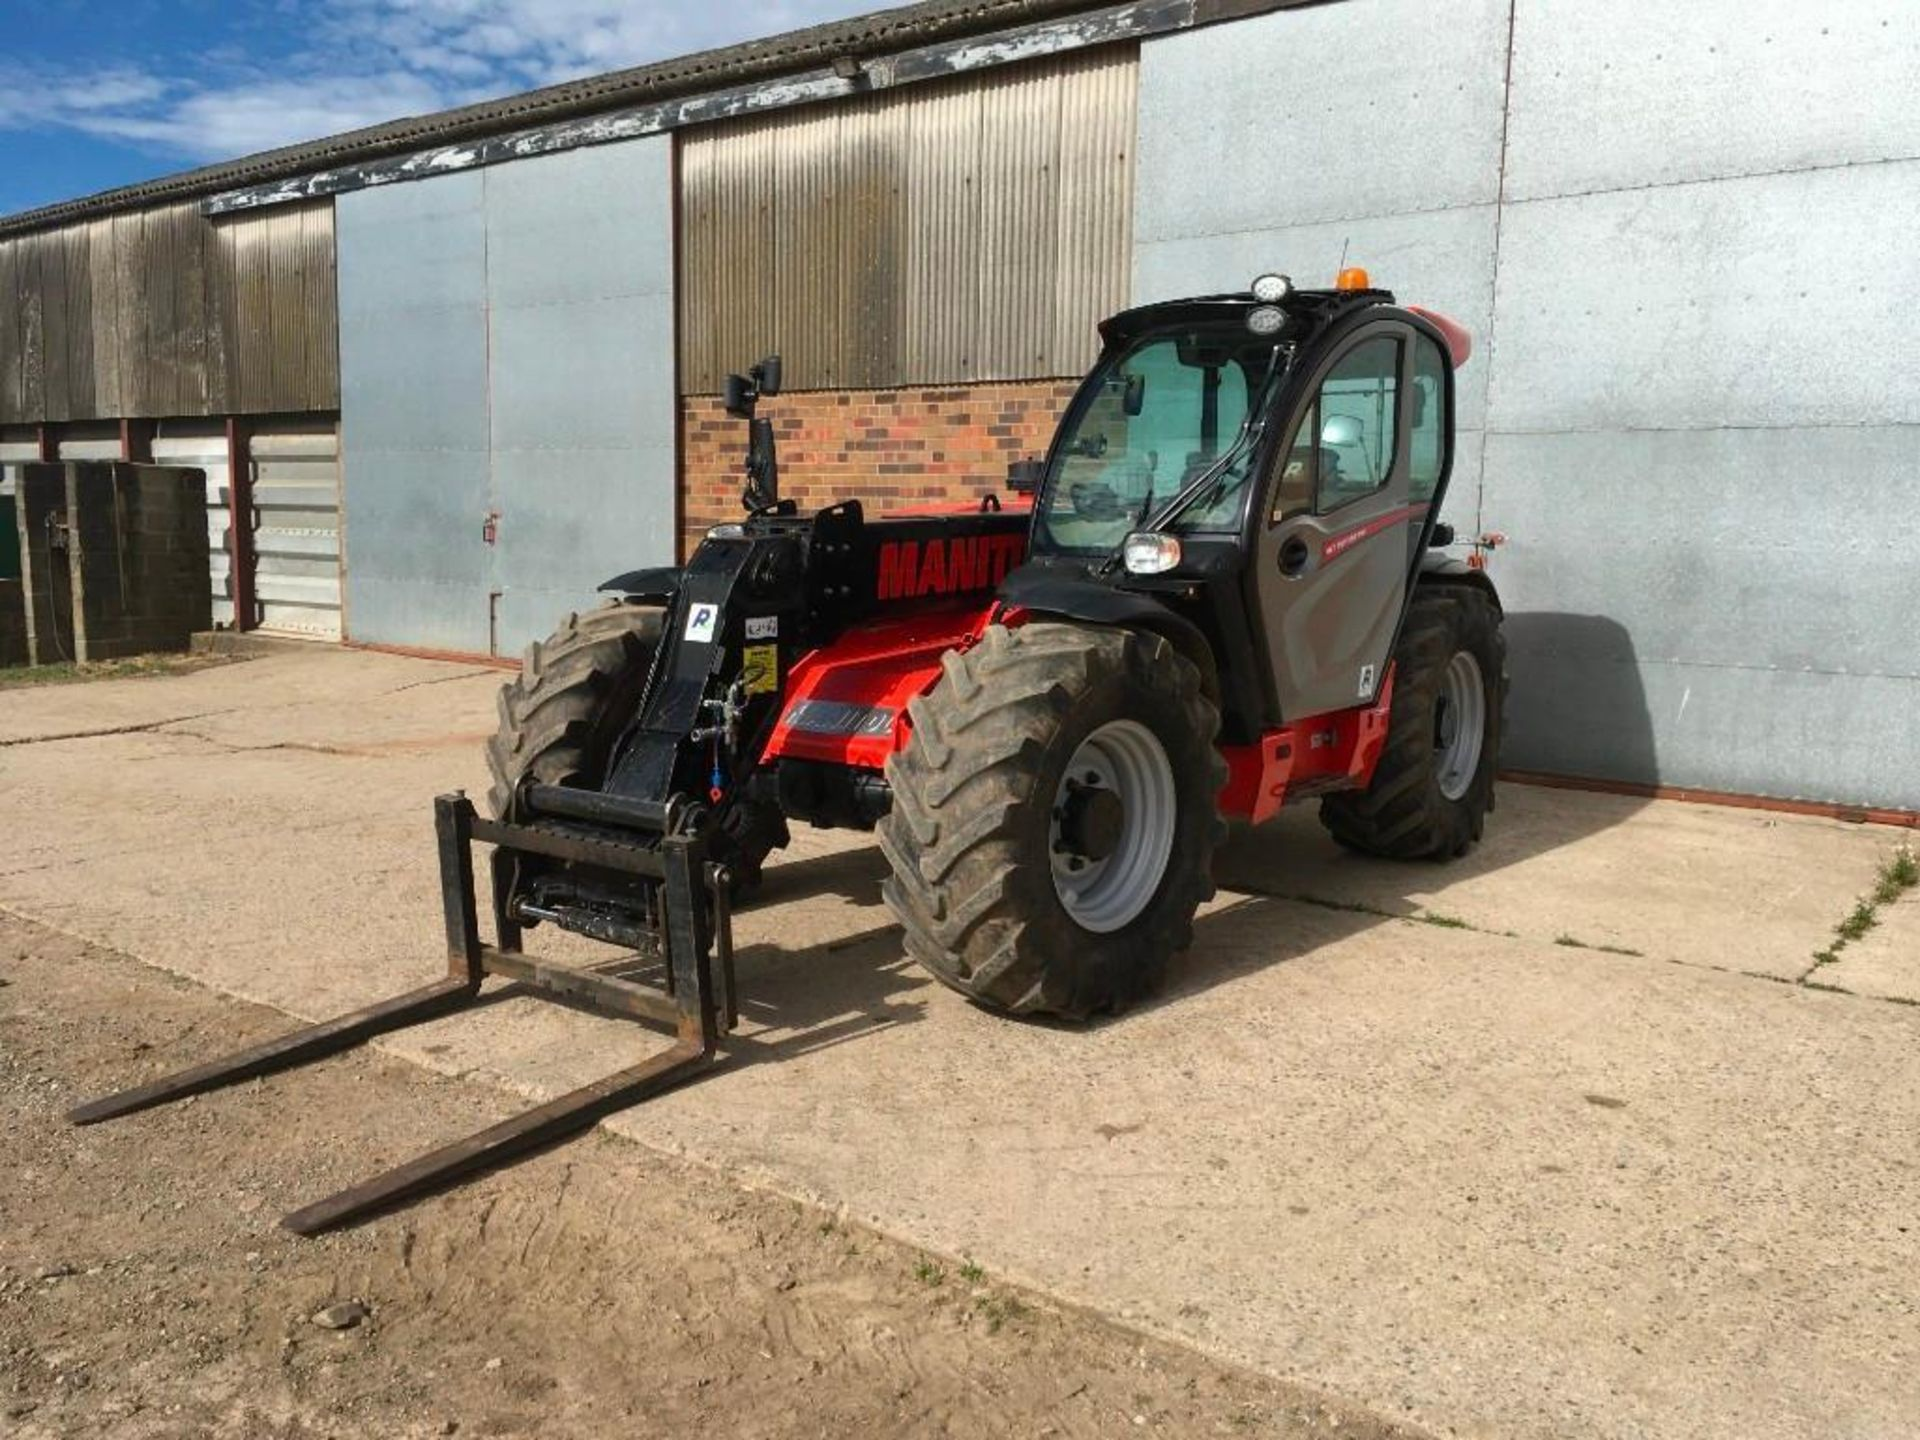 2017 Manitou MLT 737-130 PS+ Elite telehandler with rear pick up hitch, power shift, air seat, elect